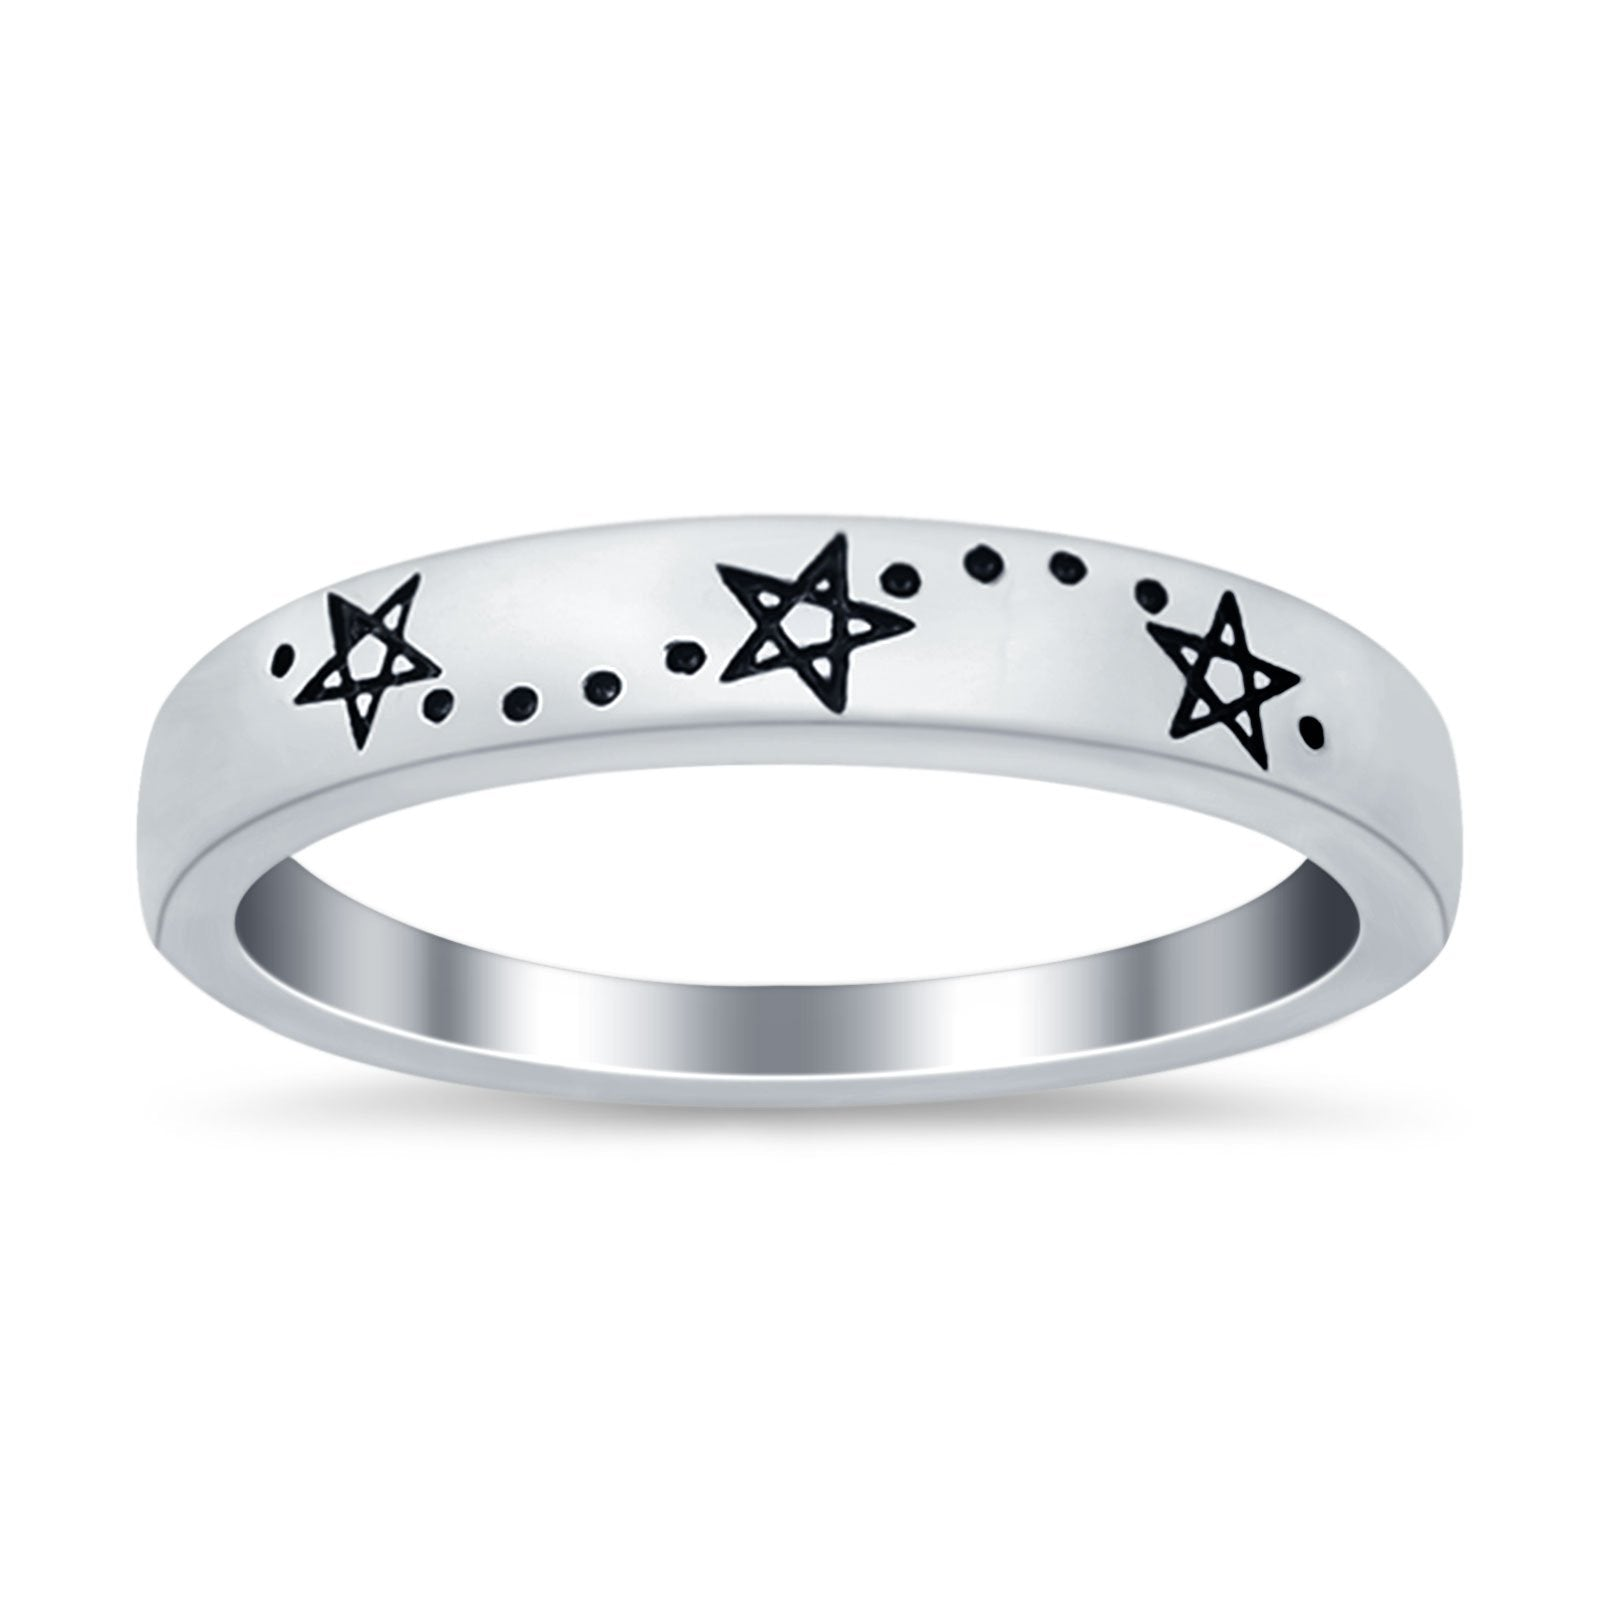 Star Band Plain Ring 925 Sterling Silver (4mm)